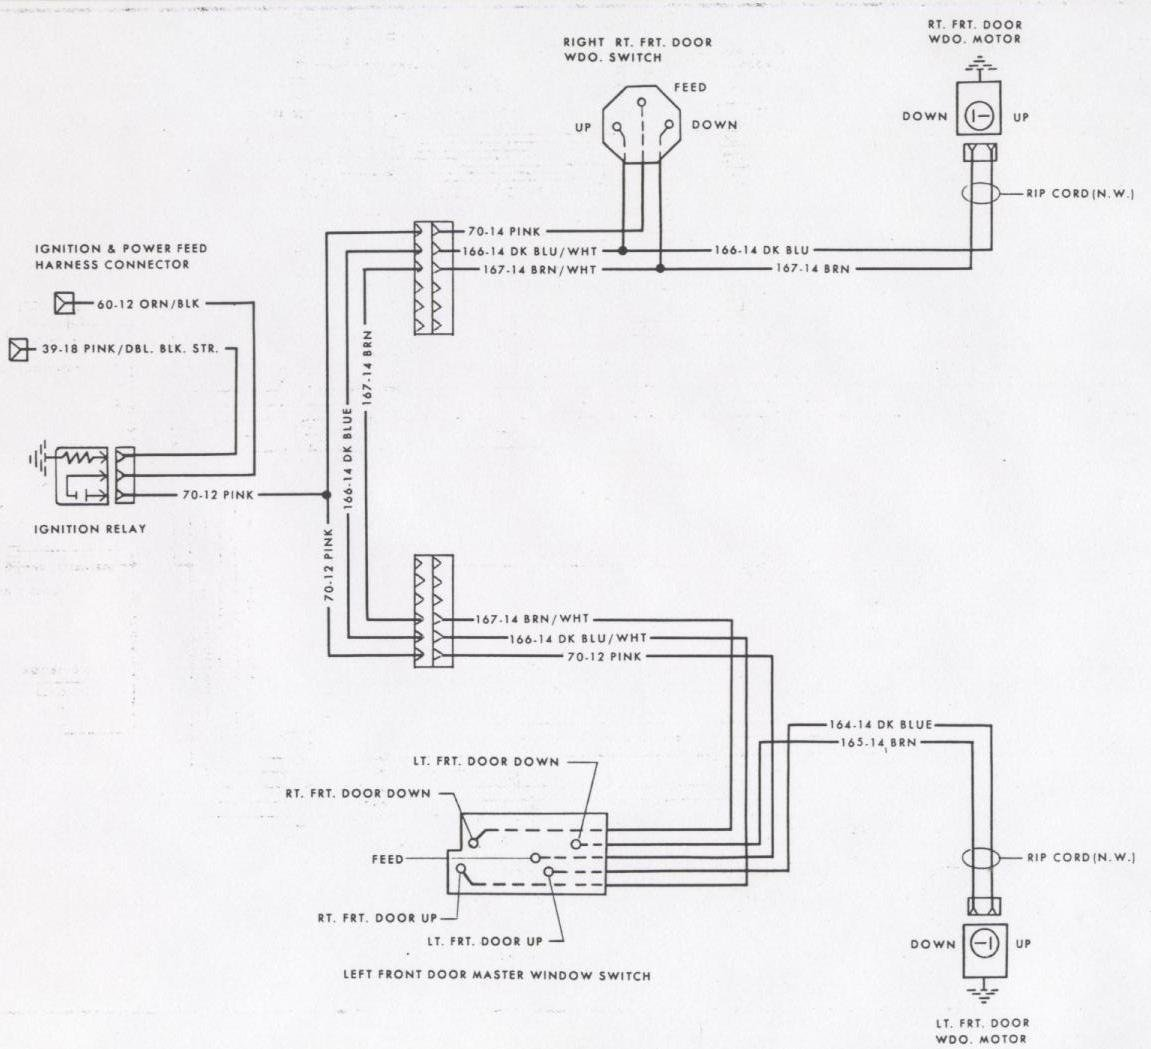 hight resolution of camaro wiring diagrams electrical information troubleshooting rh nastyz28 com 1978 mustang wiring diagram 1973 camaro wiring